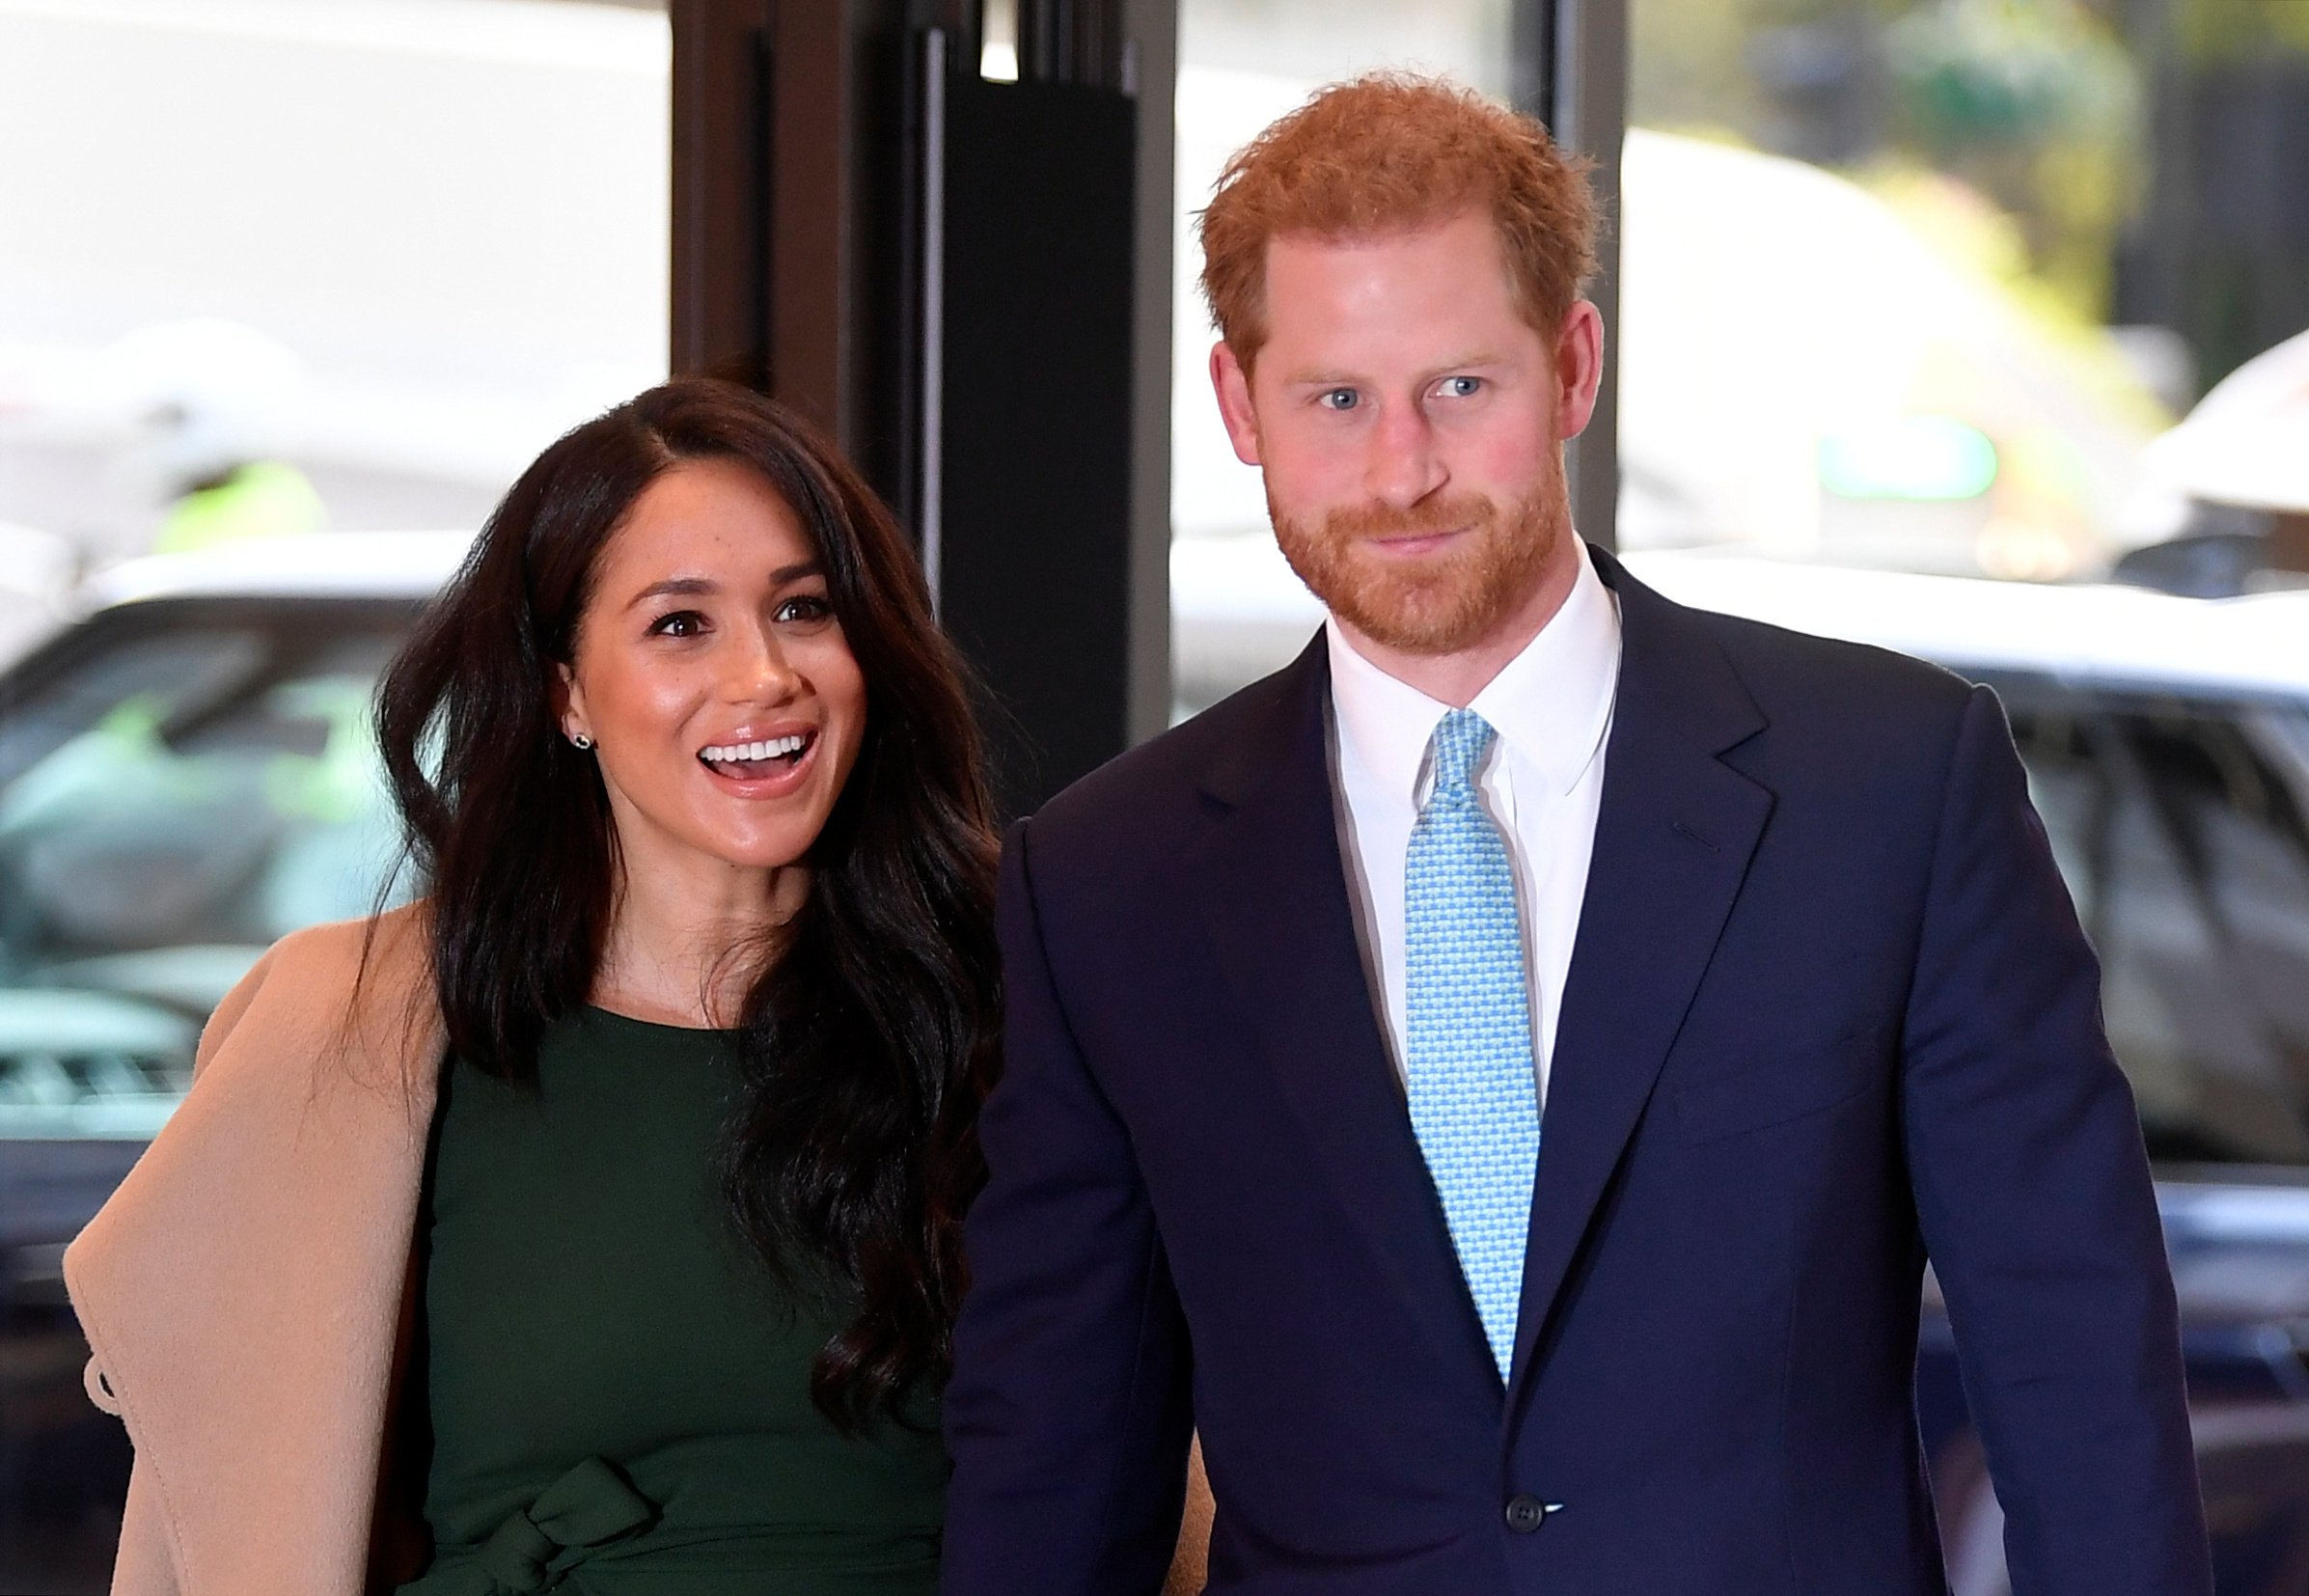 Prince Harry, Duke of Sussex and Meghan, Duchess of Sussex attend the WellChild awards at Royal Lancaster Hotel on October 15, 2019 in London, England | Source: Getty Images